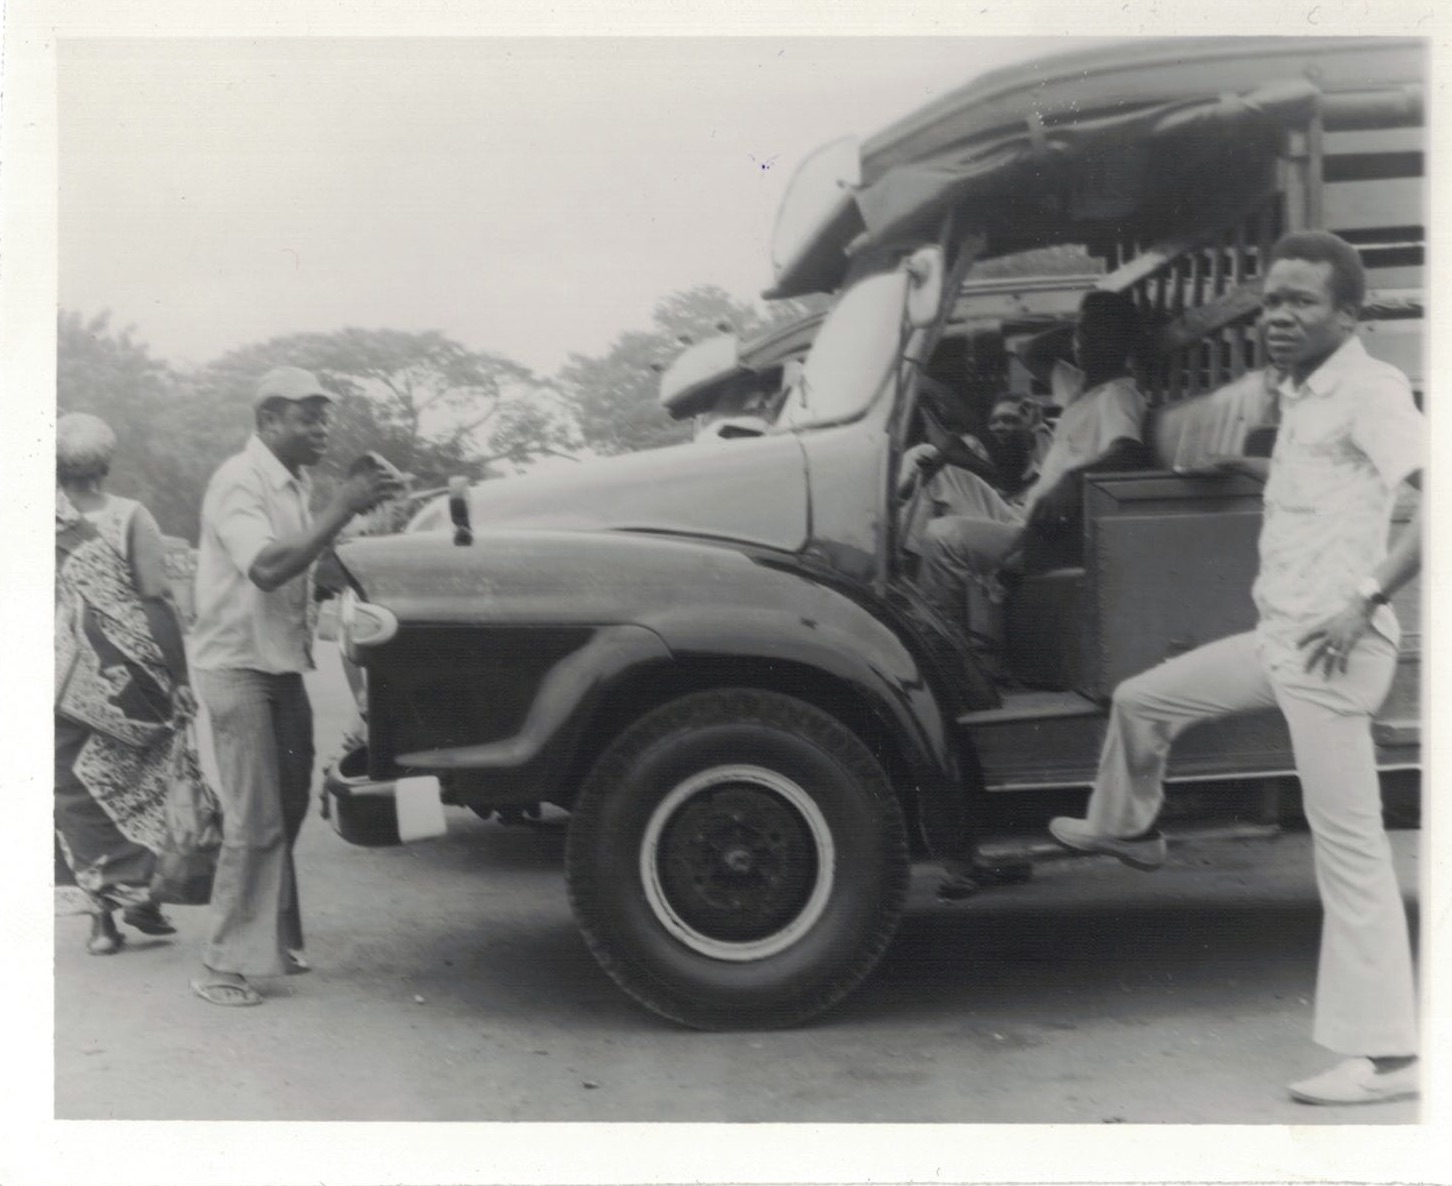 """A day in the life of a Tro-tro Driver,"" Ben Kwakye, 3/9/75. Source: Photographic Section, Information Services Department, Ministry of Information, Accra, Ghana."